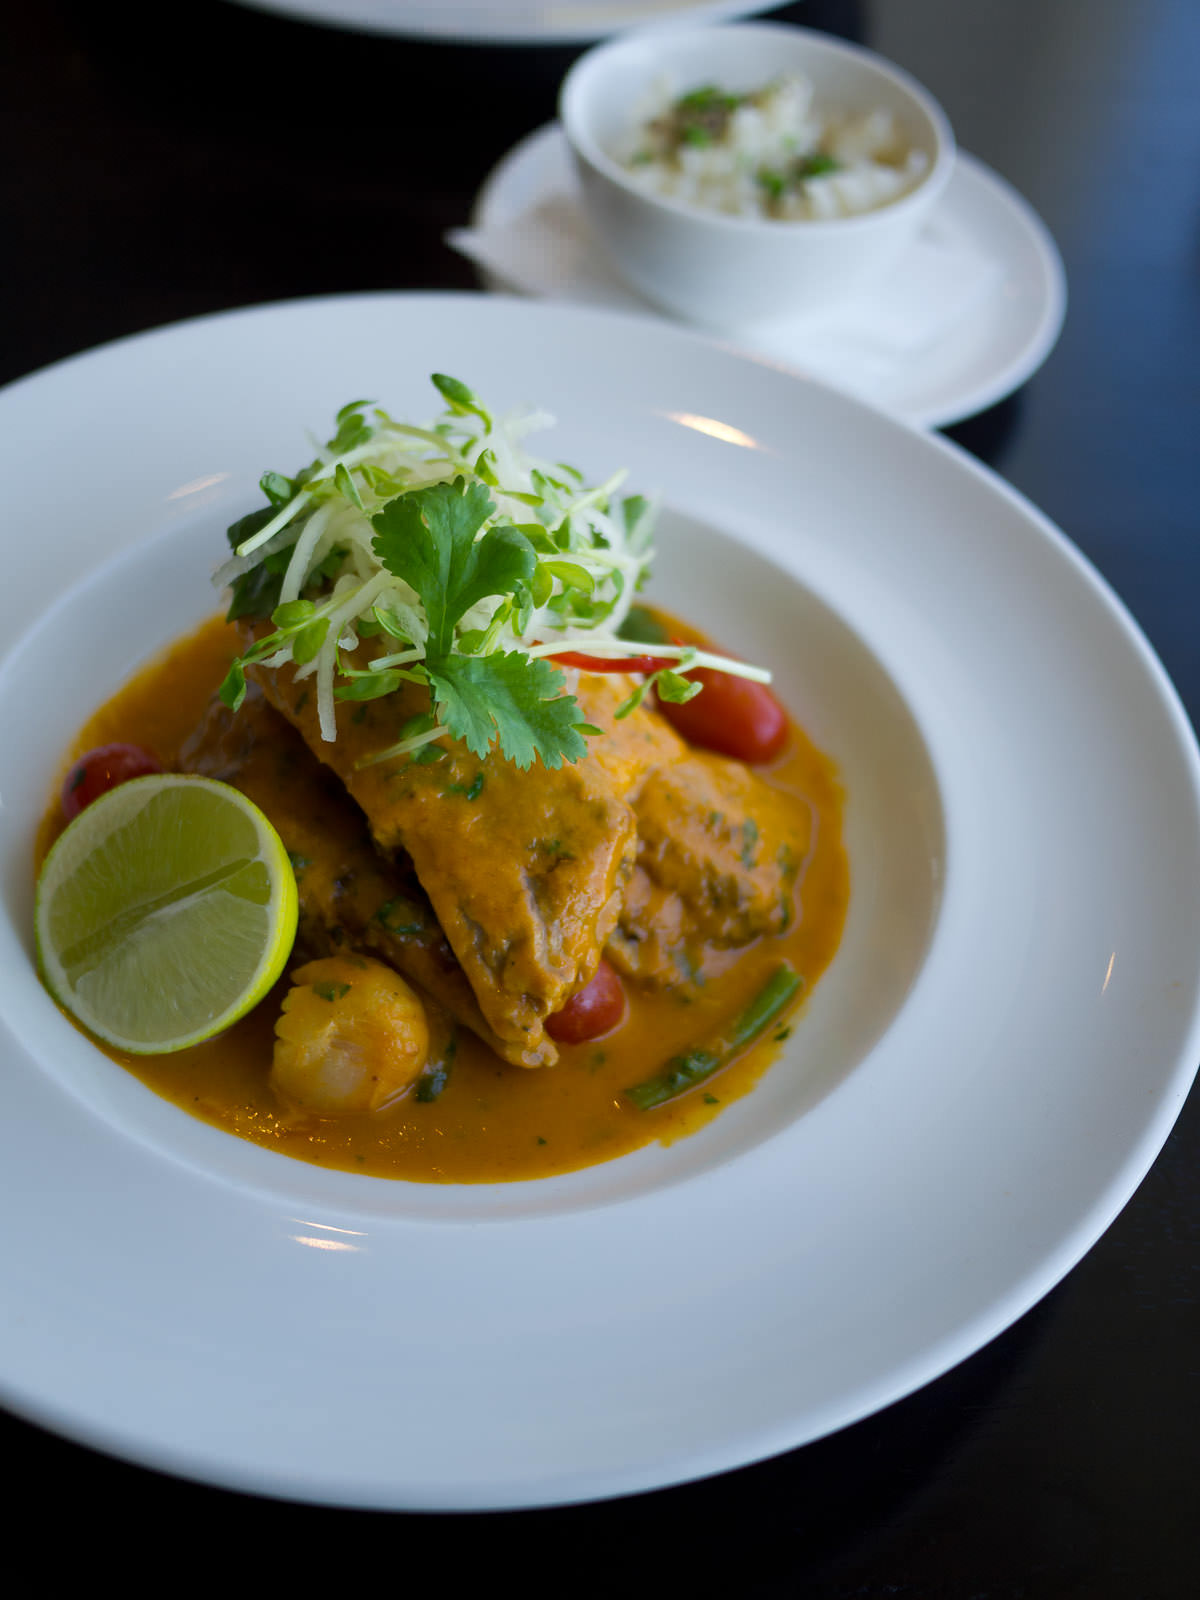 Double roasted duck, slow roasted in rich Thai curry sauce with lychees, tamarind, lemongrass & coconut rice (AU$45.50)